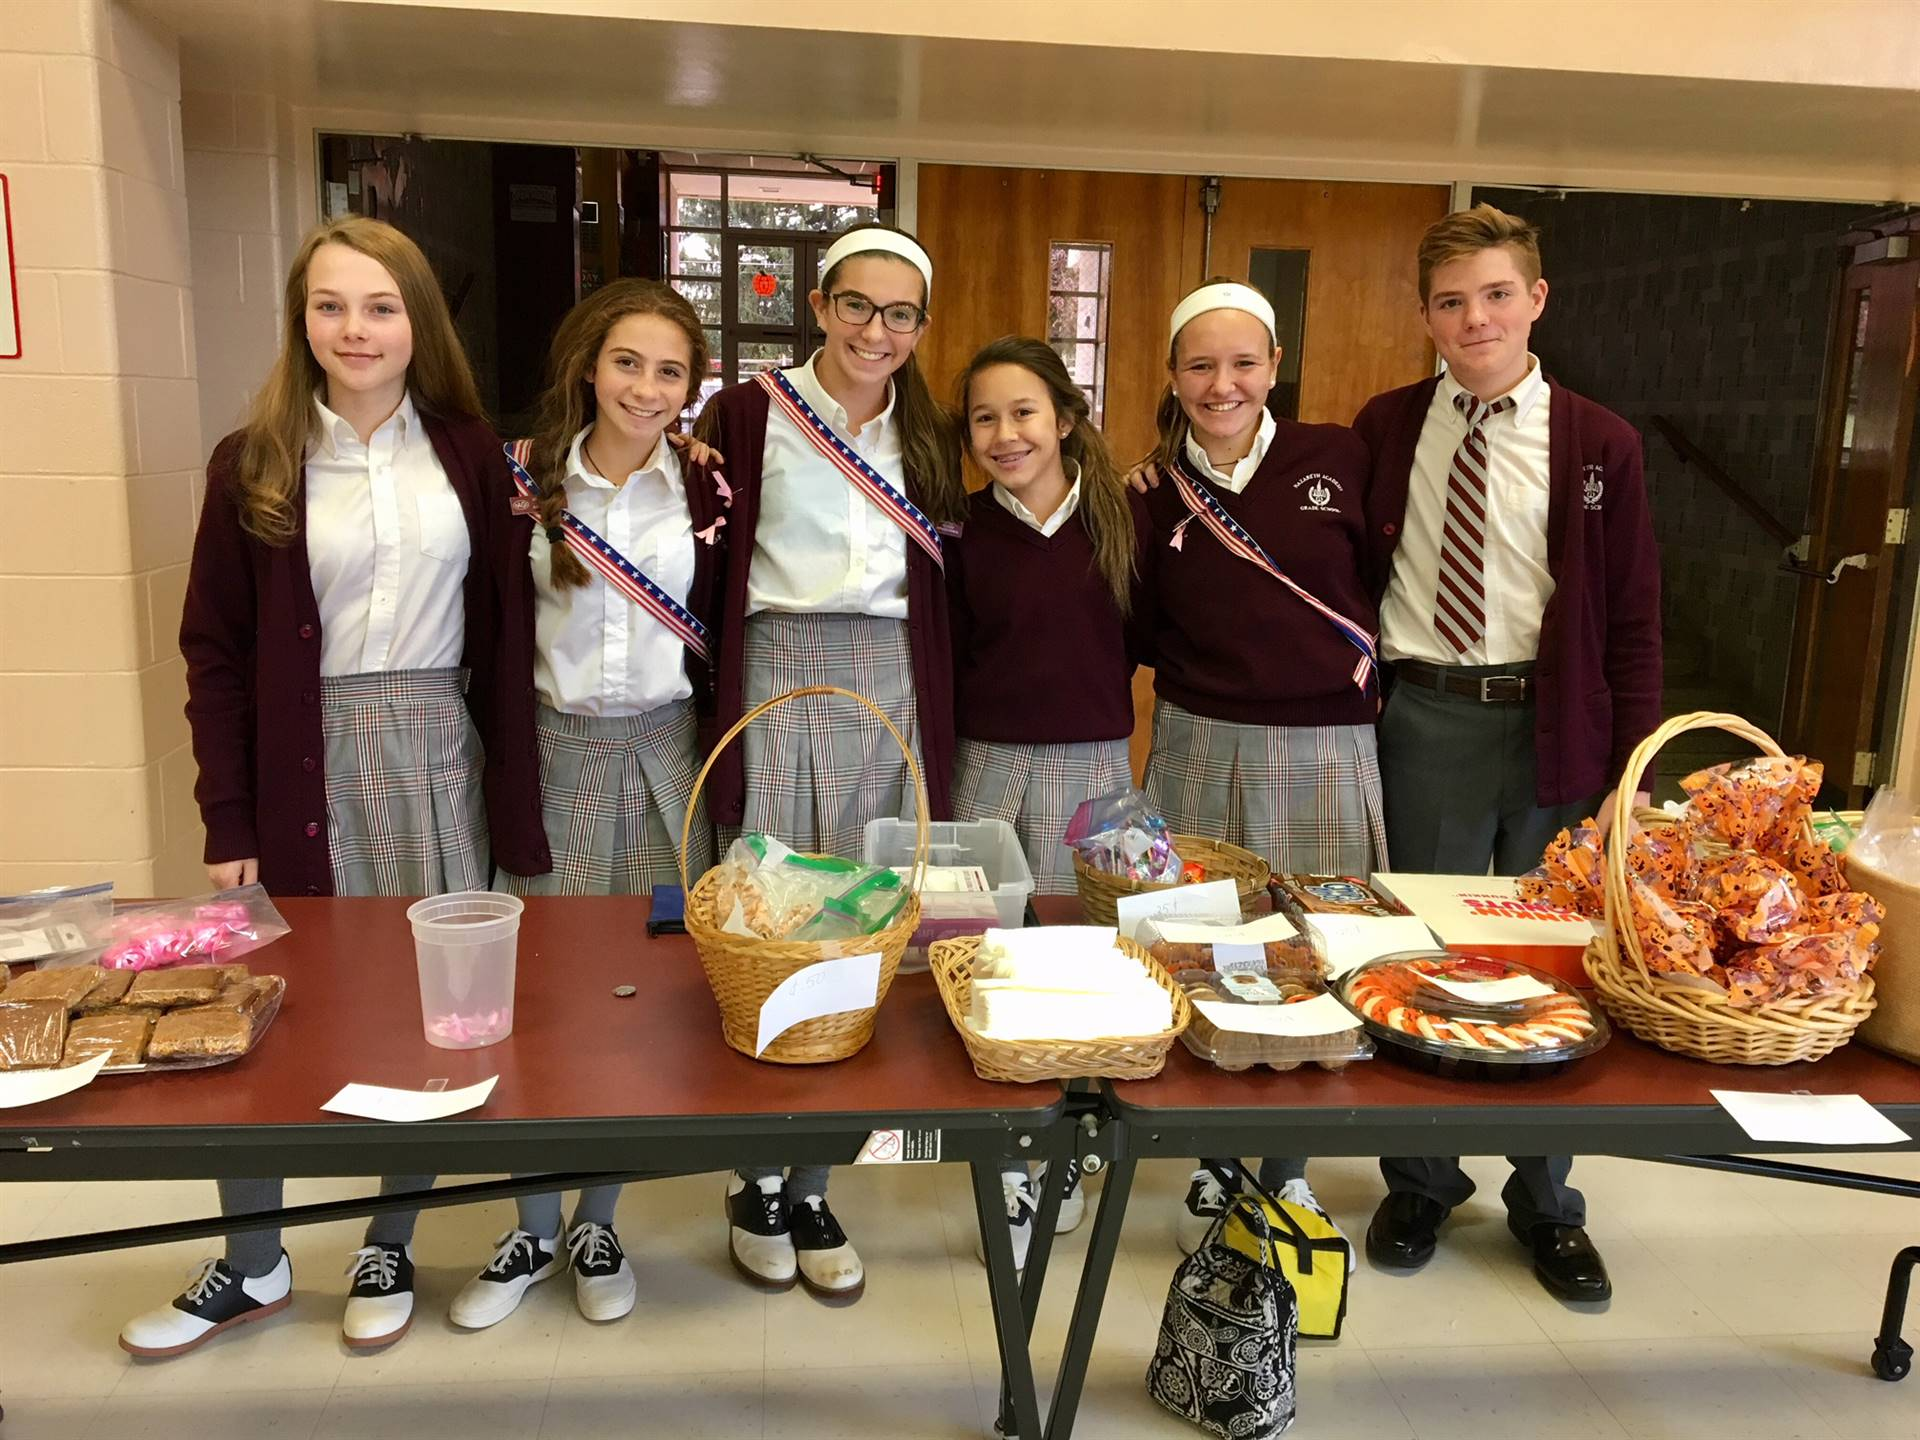 Bake sale for breast cancer research